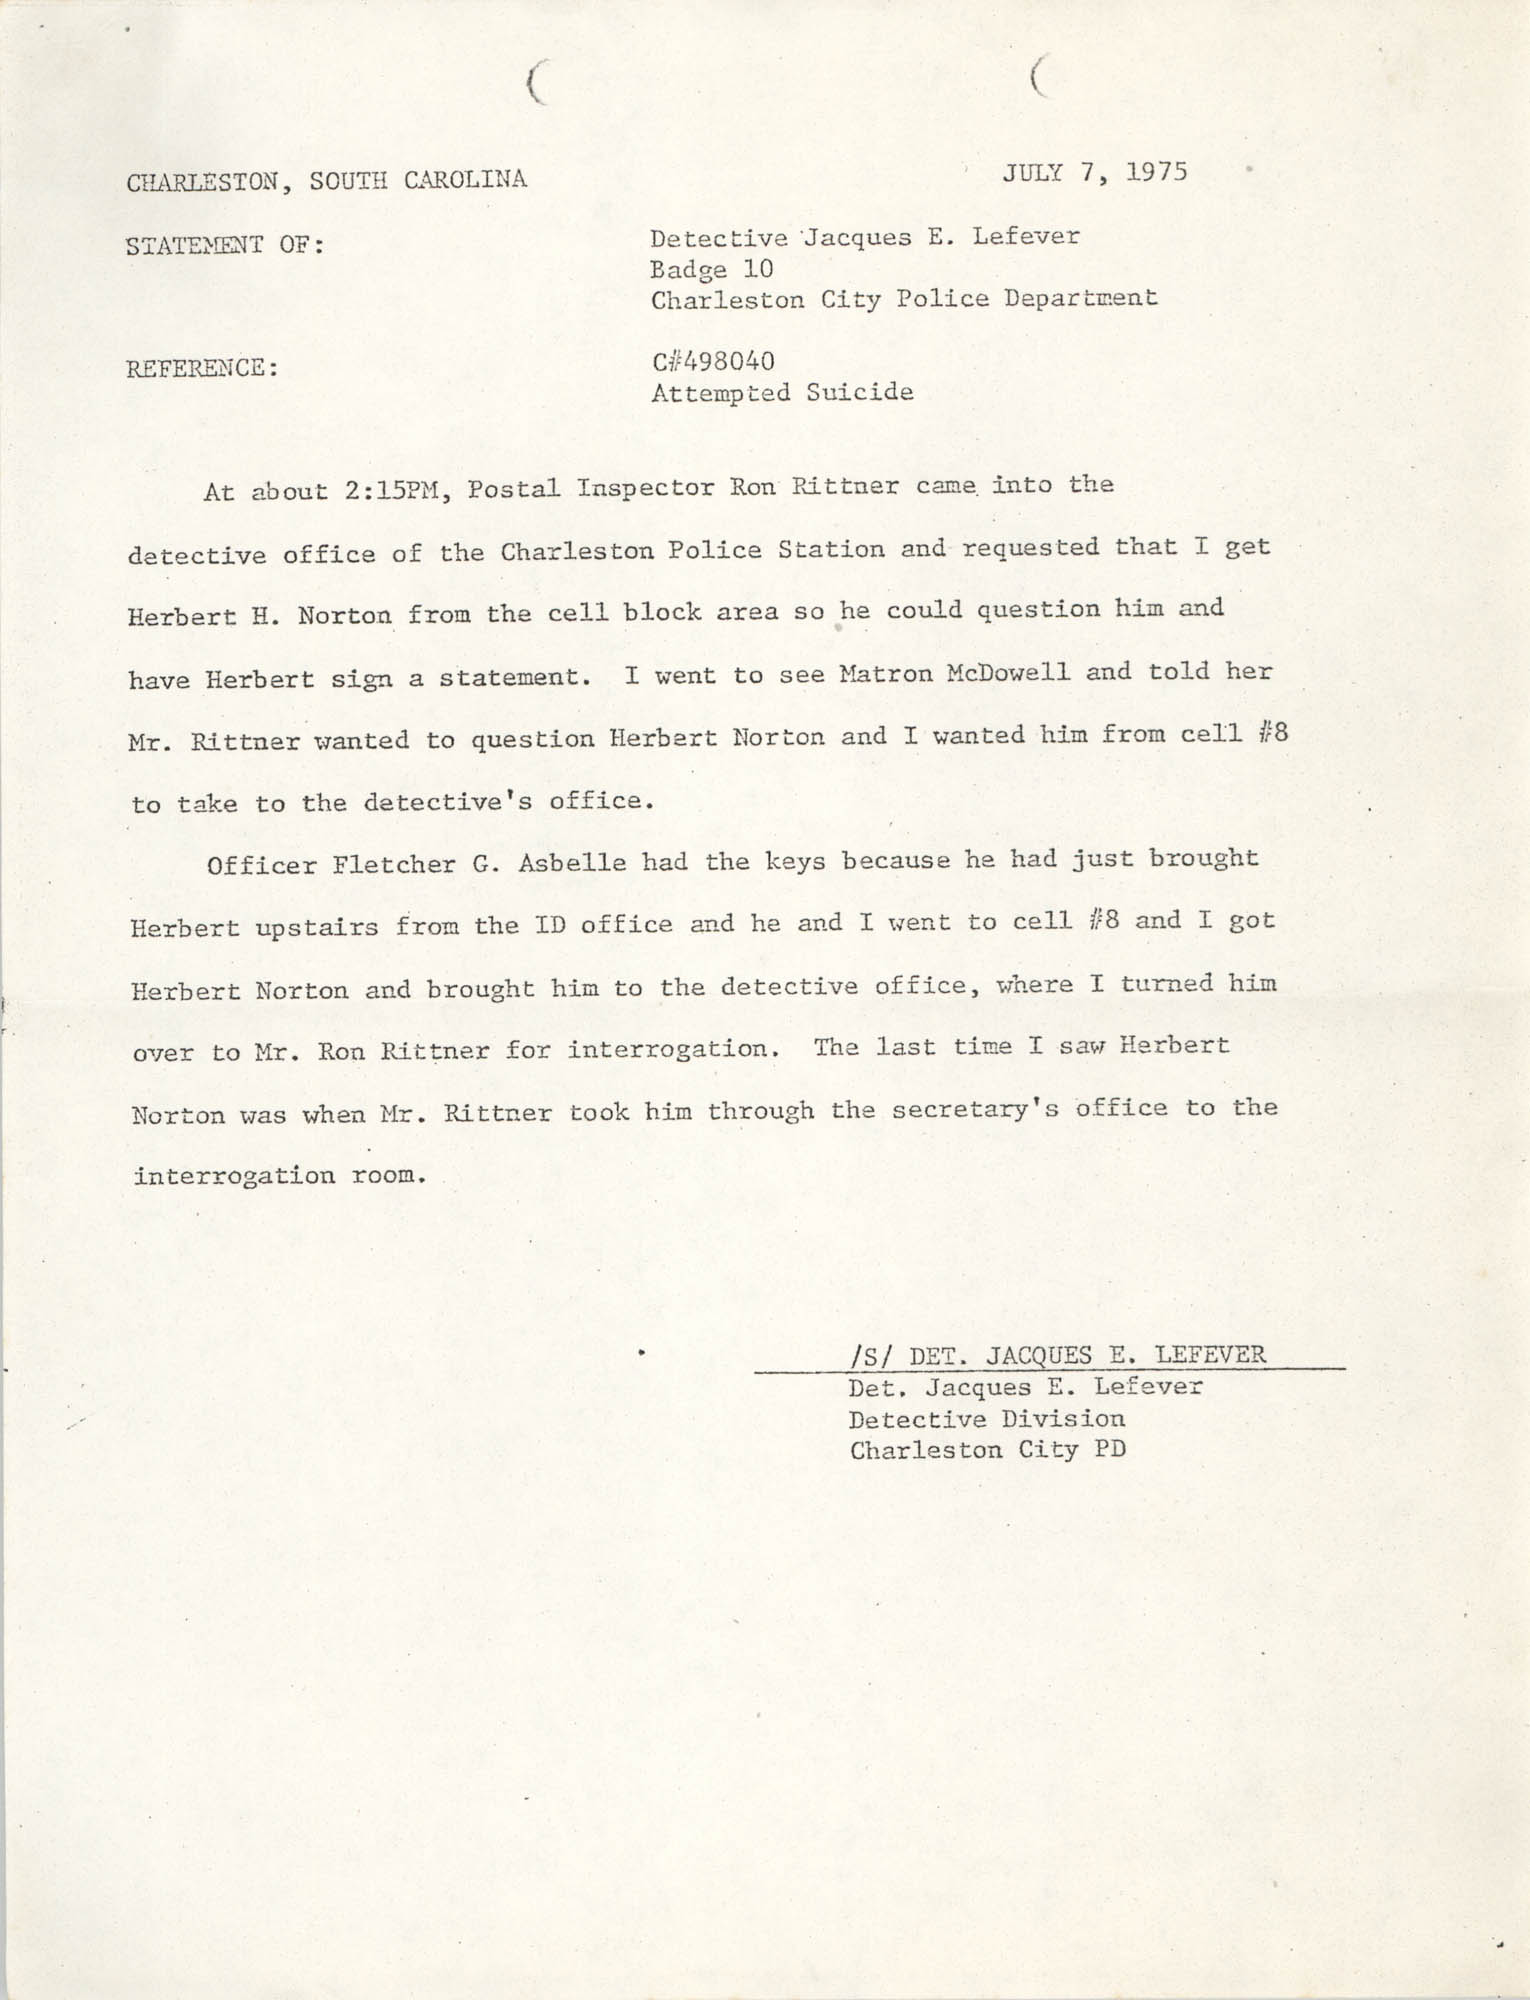 Memorandum, July 7, 1975